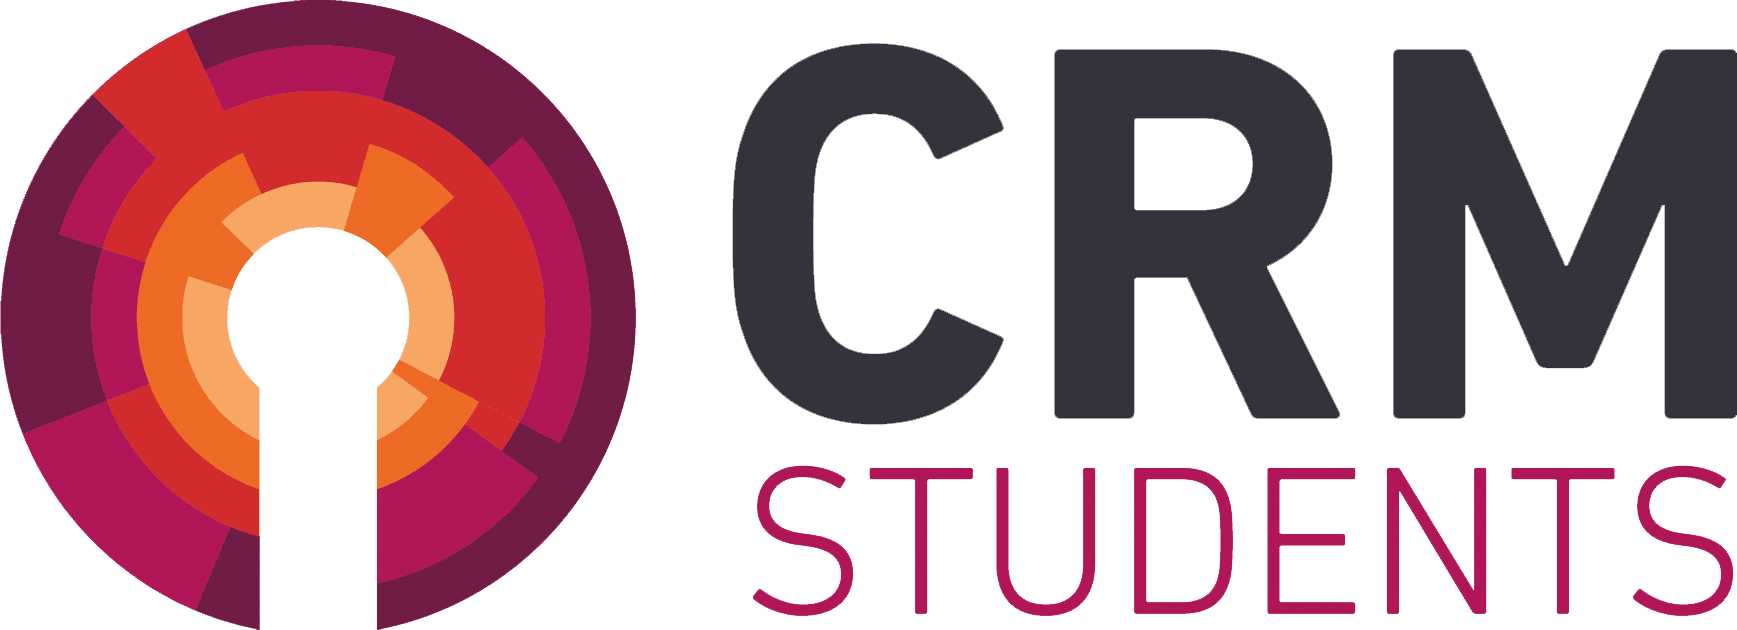 CRM Students Logo